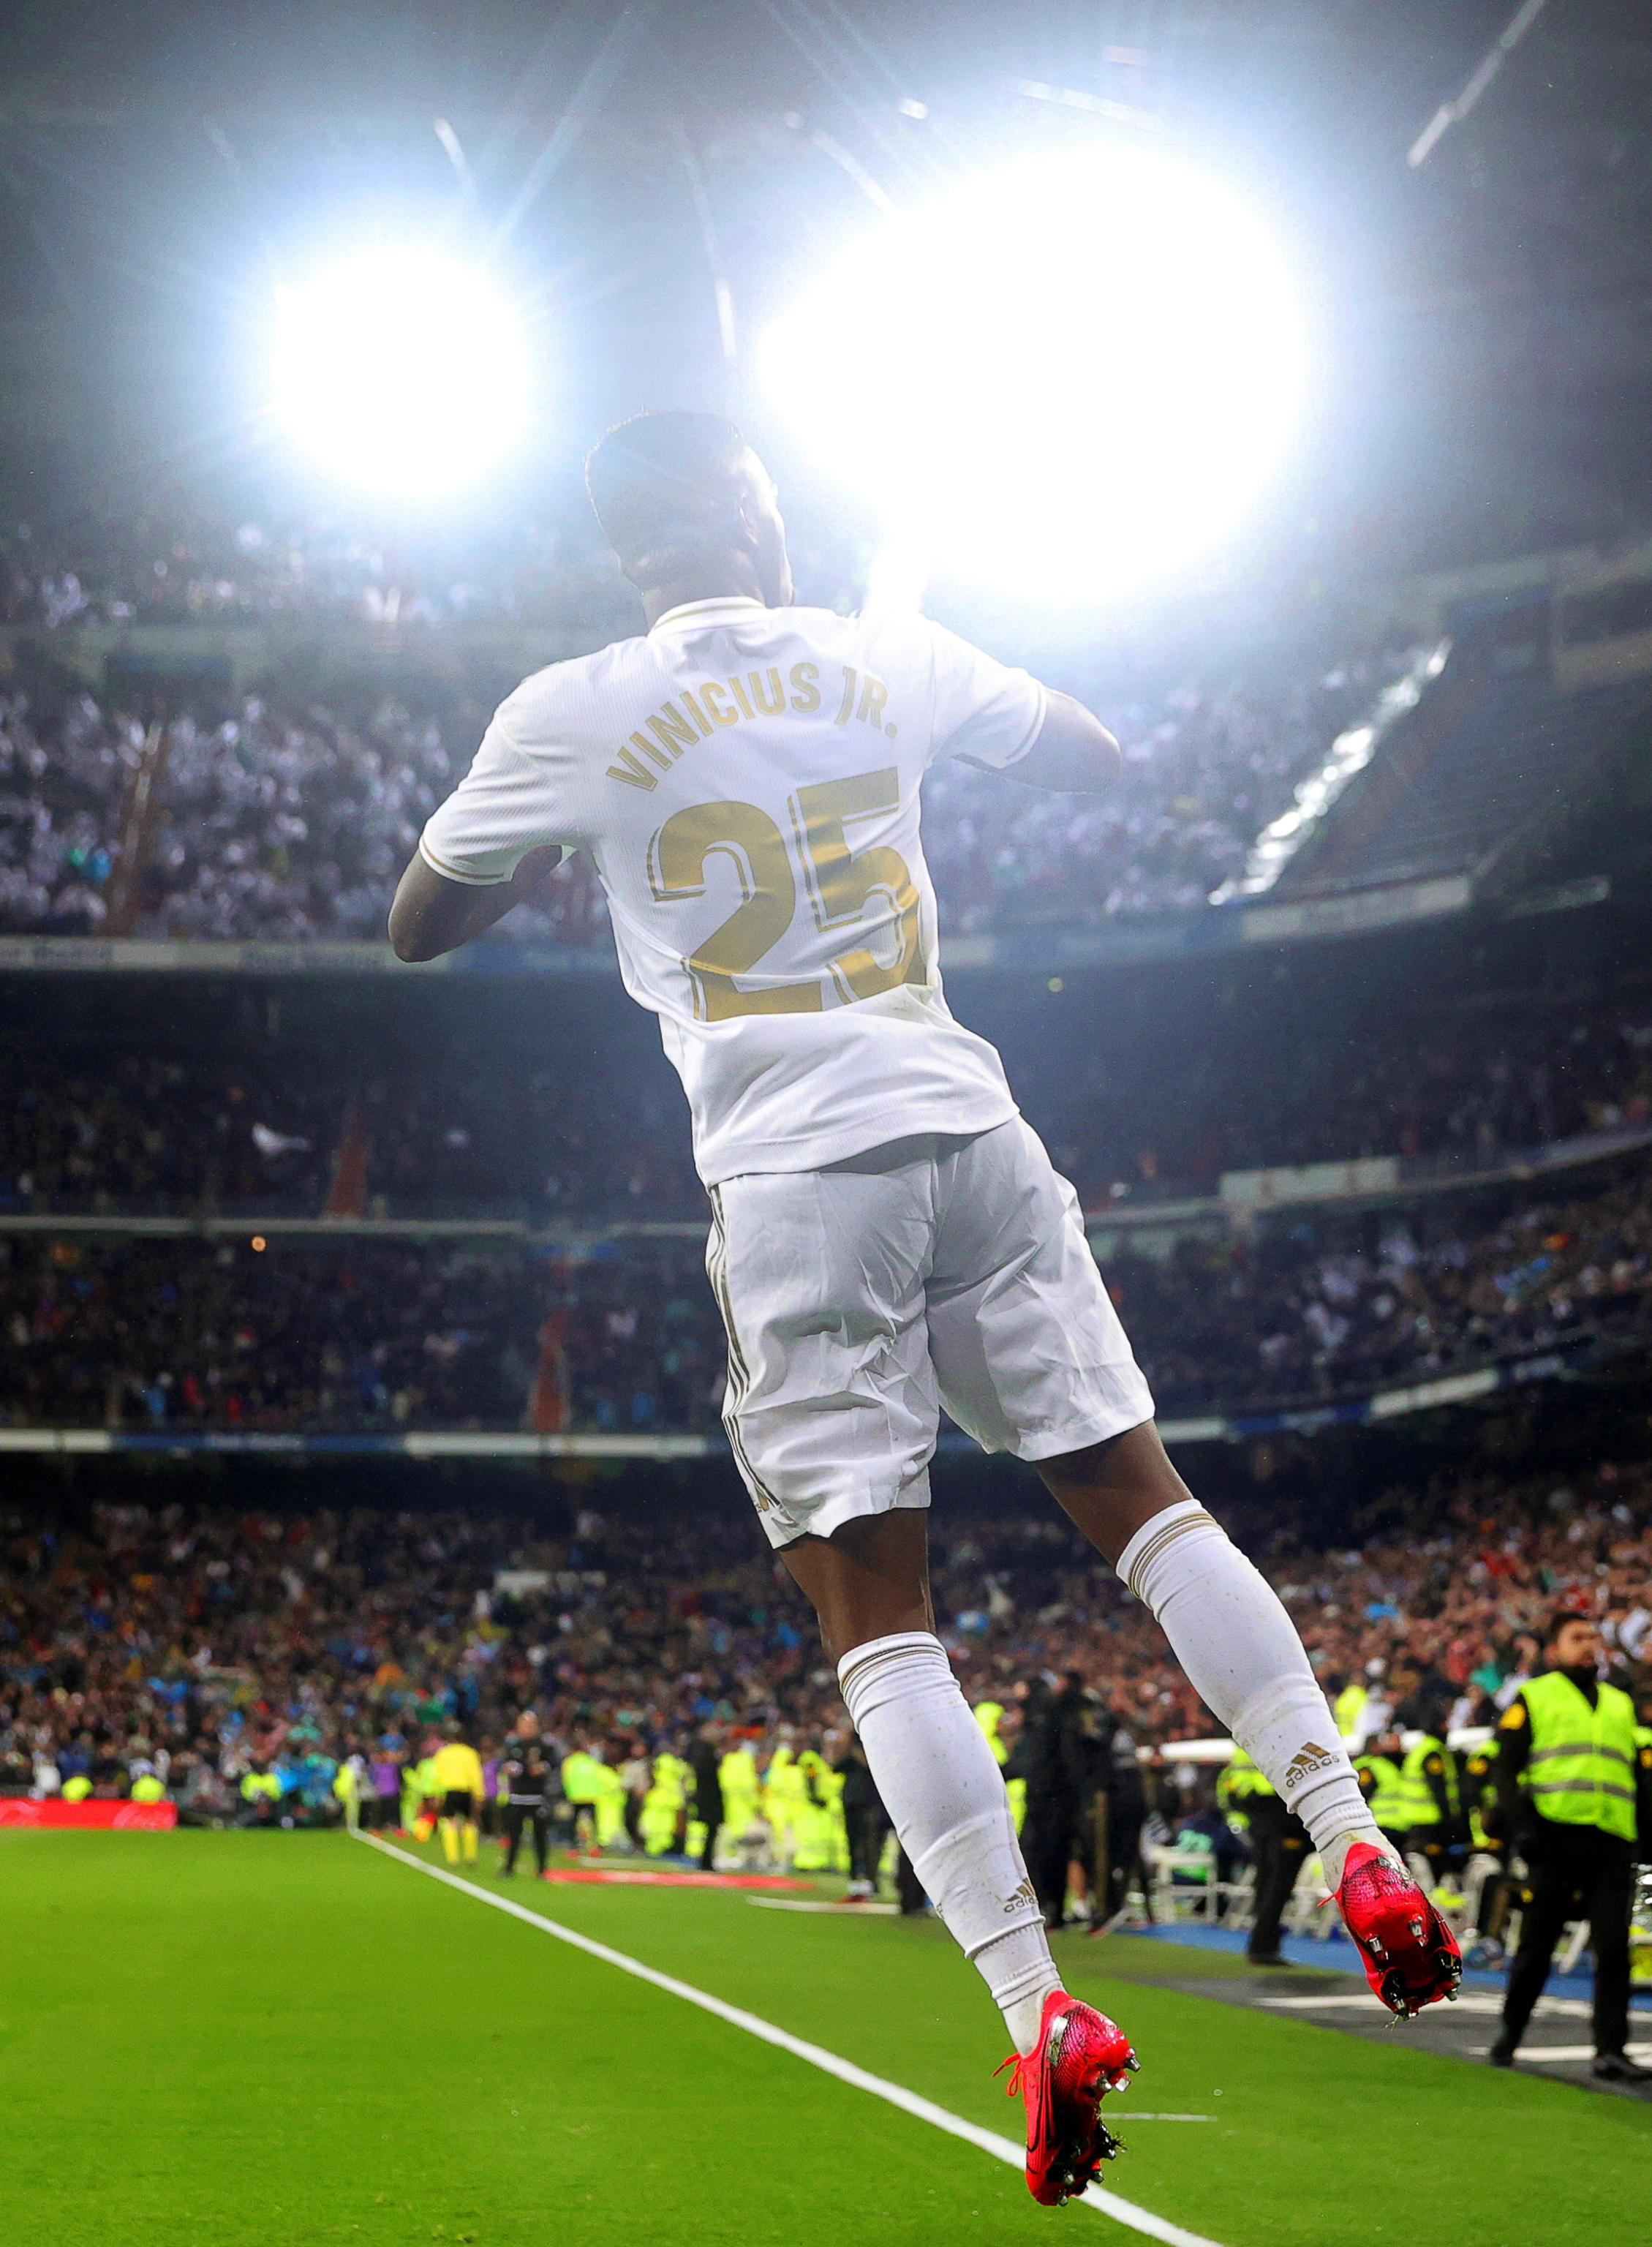 epa08263299 Real Madrid's Vinicius Junior celebrates after scoring the 1-0 lead during the Spanish La Liga soccer match between Real Madrid and FC Barcelona, traditionally known as 'El Clasico', at Santiago Bernabeu stadium in Madrid, Spain, 01 March 2020.  EPA/JUANJO MARTIN